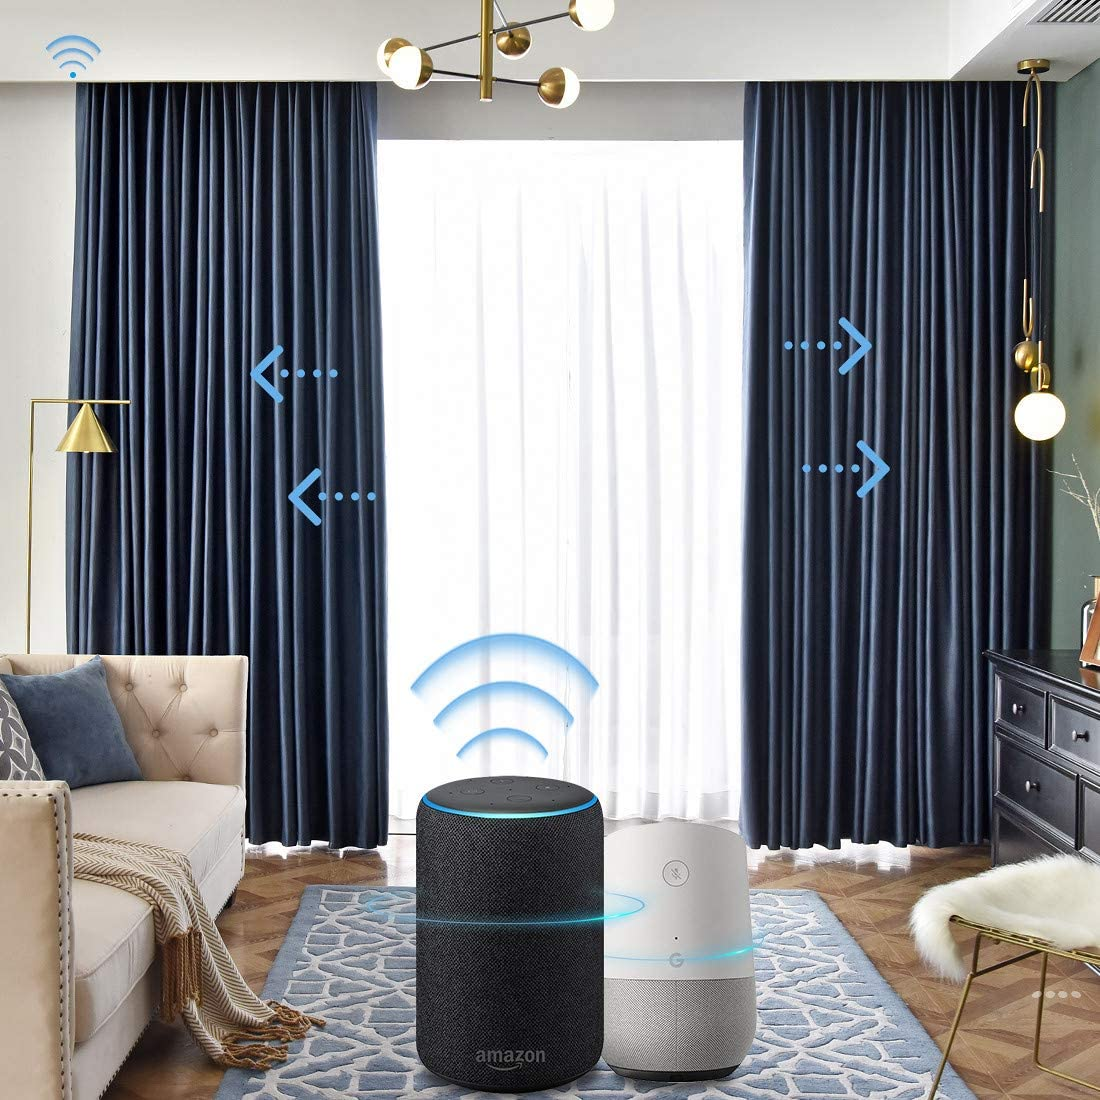 Graywind Motorized Blackout Curtain Set Smart Rod Remote Control Drapes Work with Alexa Google Home for Bedroom Office Living Room Ice Blue